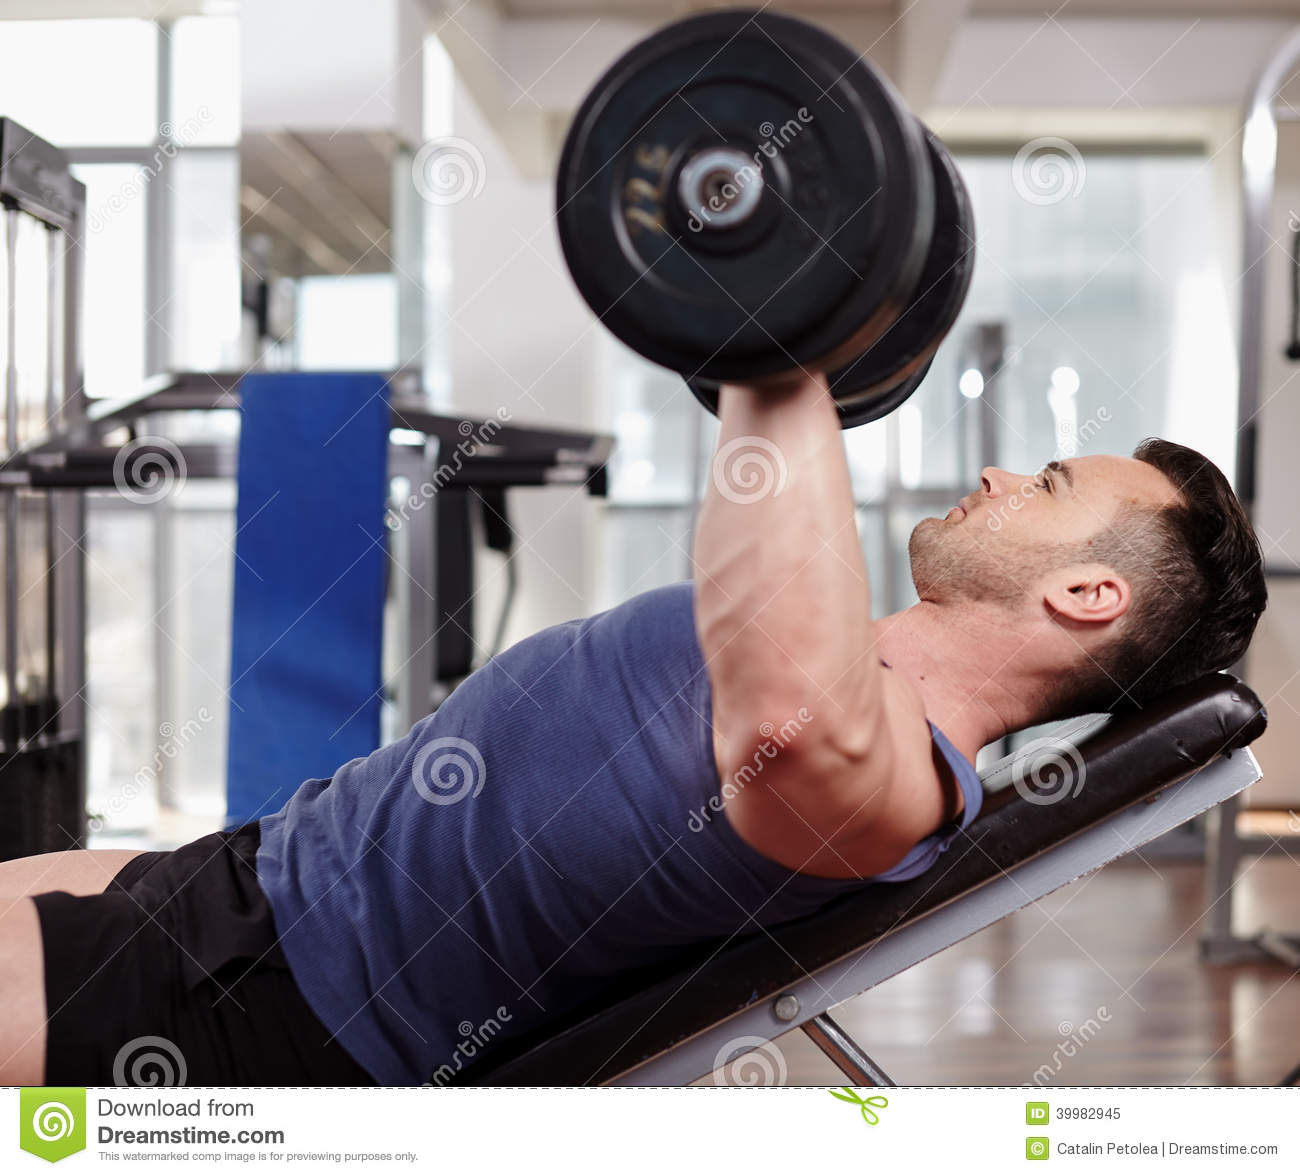 Chest Workout On Bench Press Stock Image - Image of